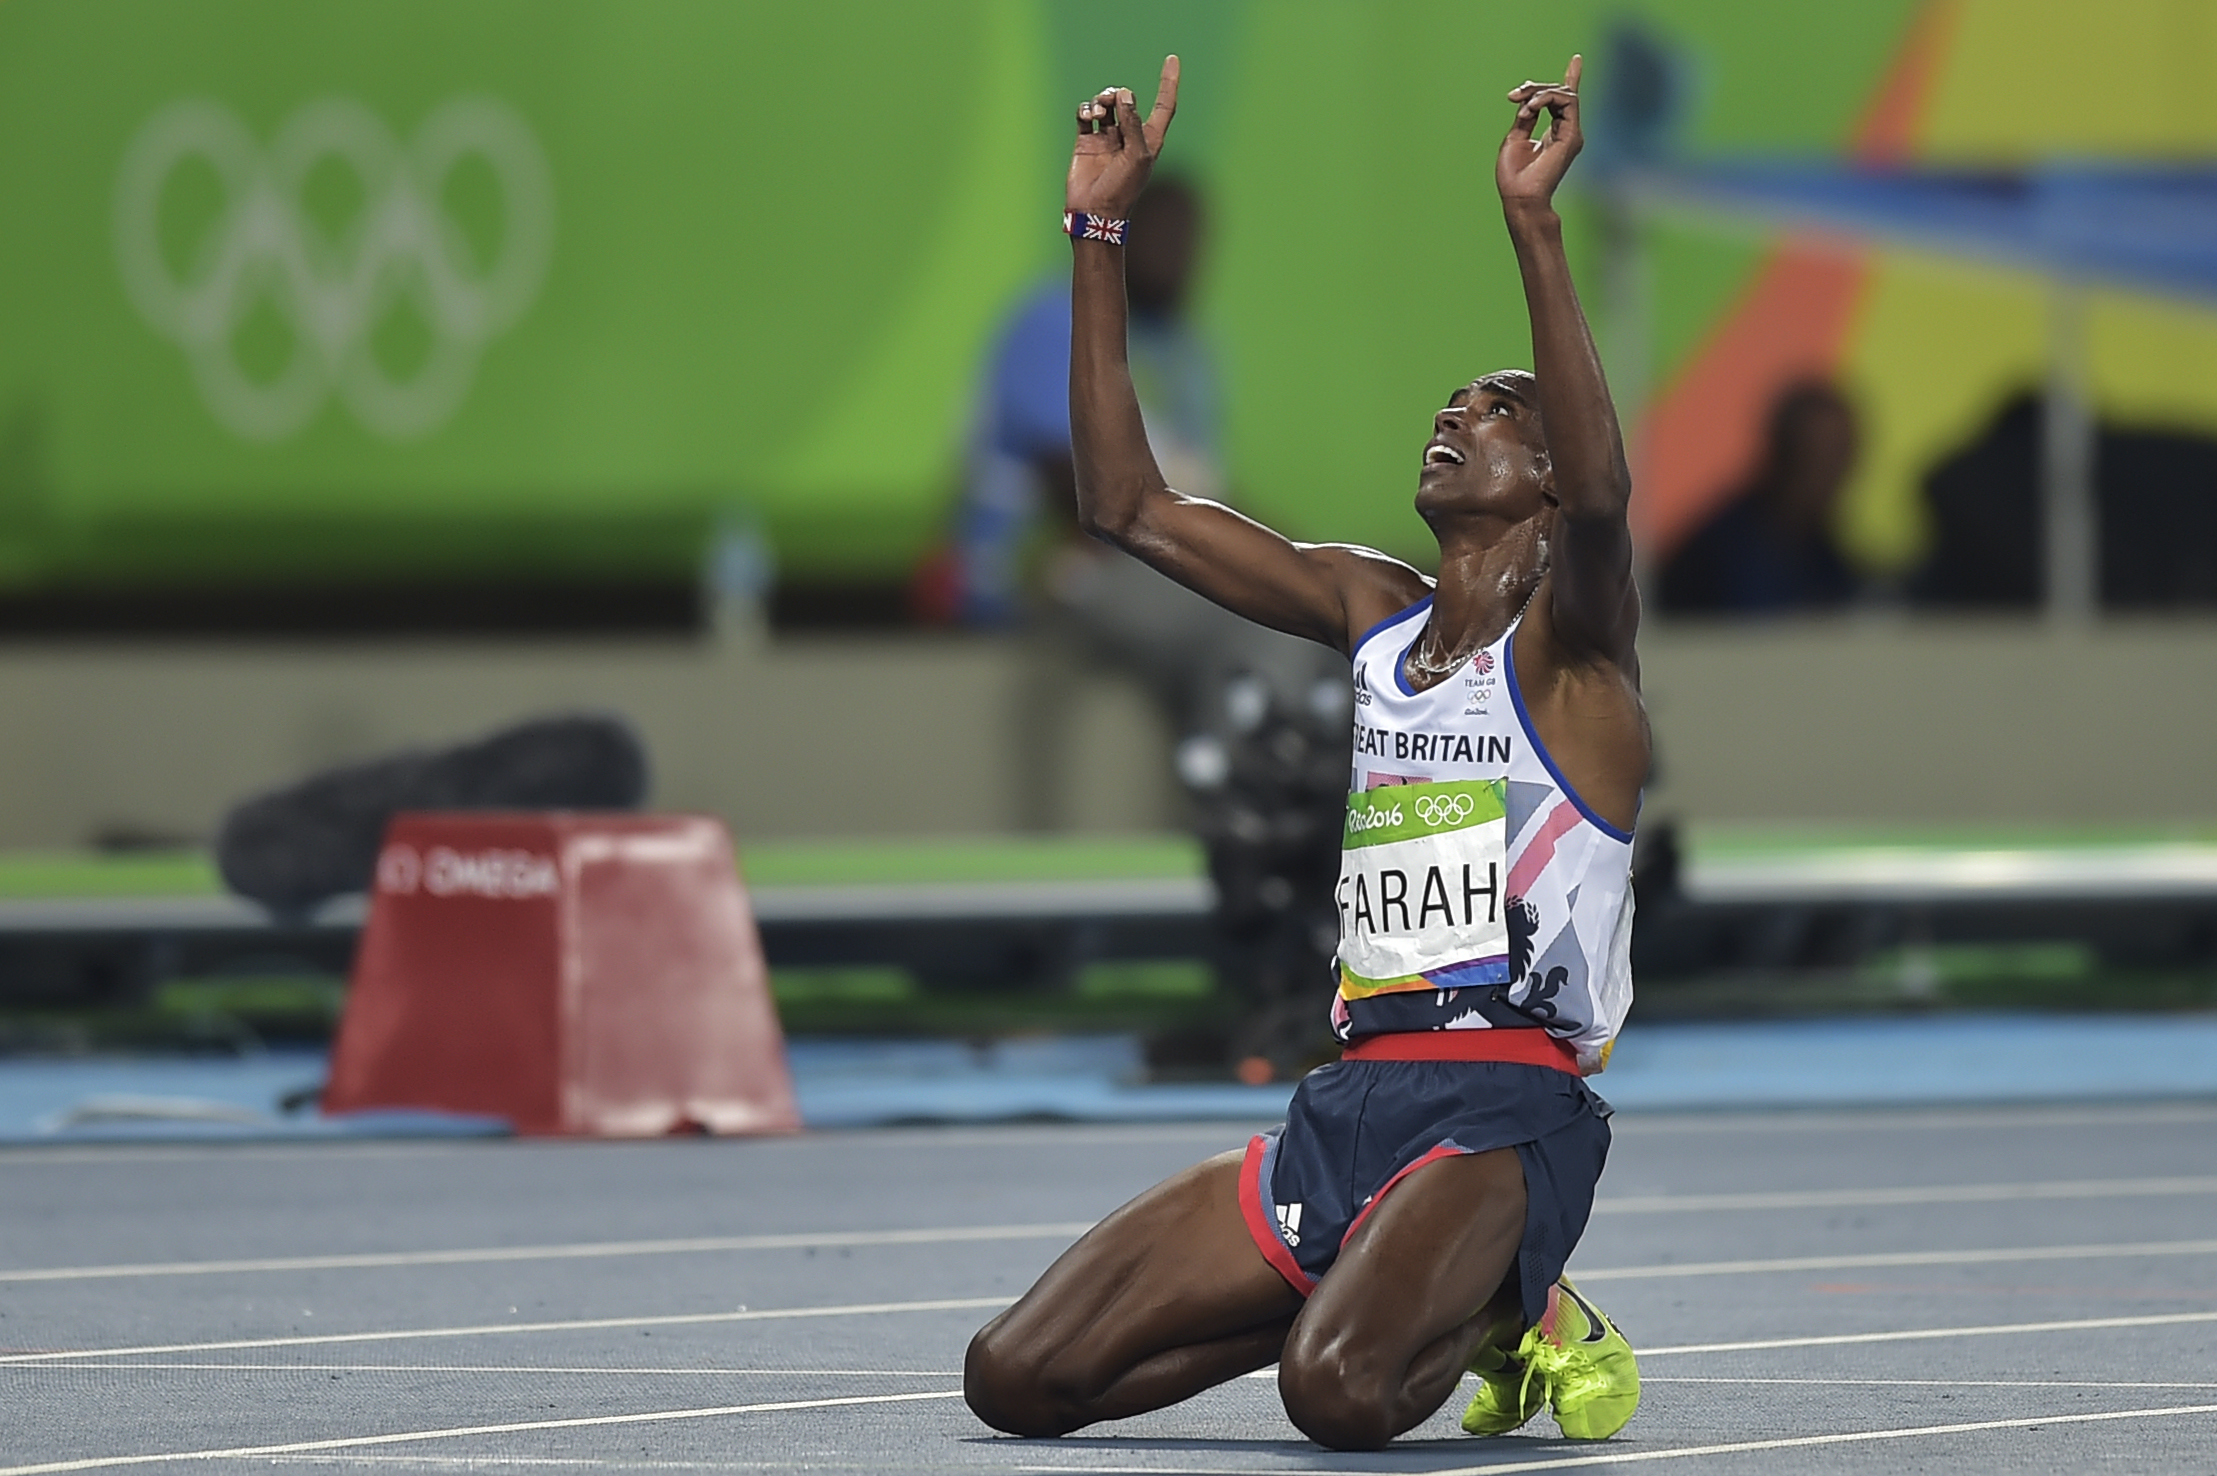 Day 8 at the Olympics: What you might have missed on a record-breaking Saturday for GB athletes